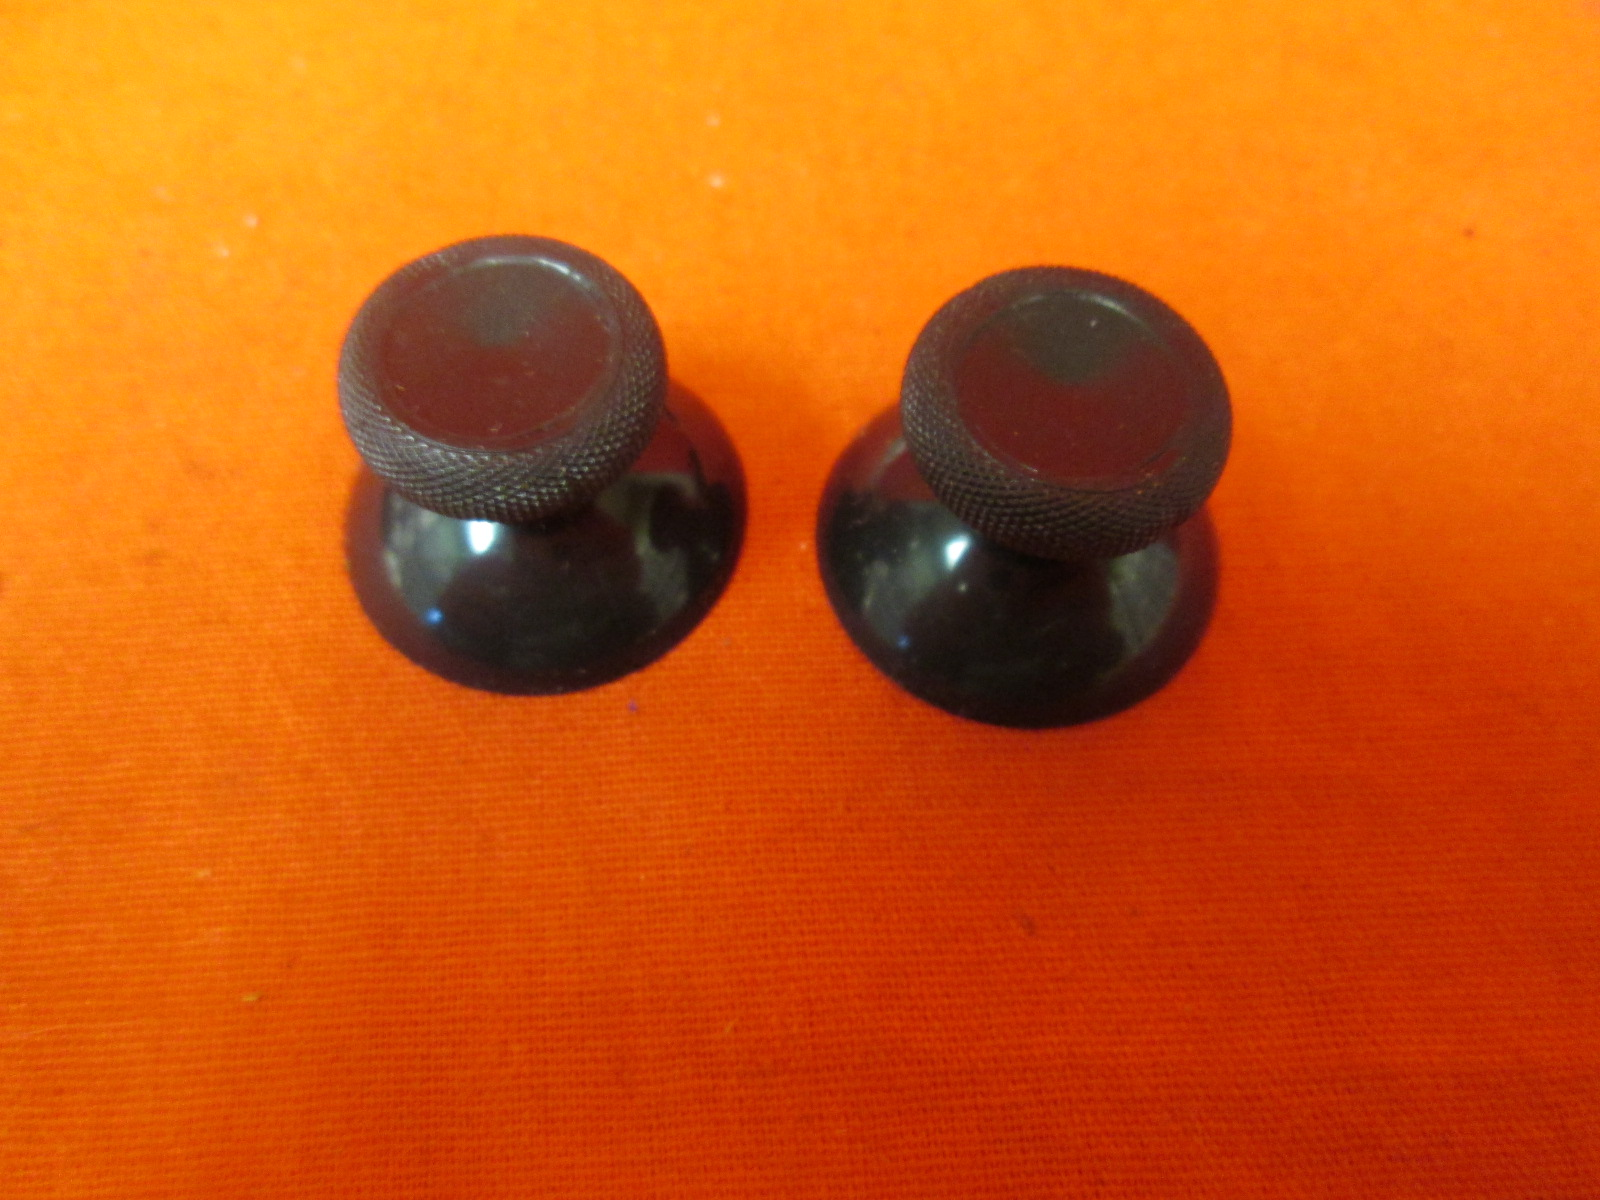 Replacement Microsoft OEM Joystick Knobs For Xbox One Controller